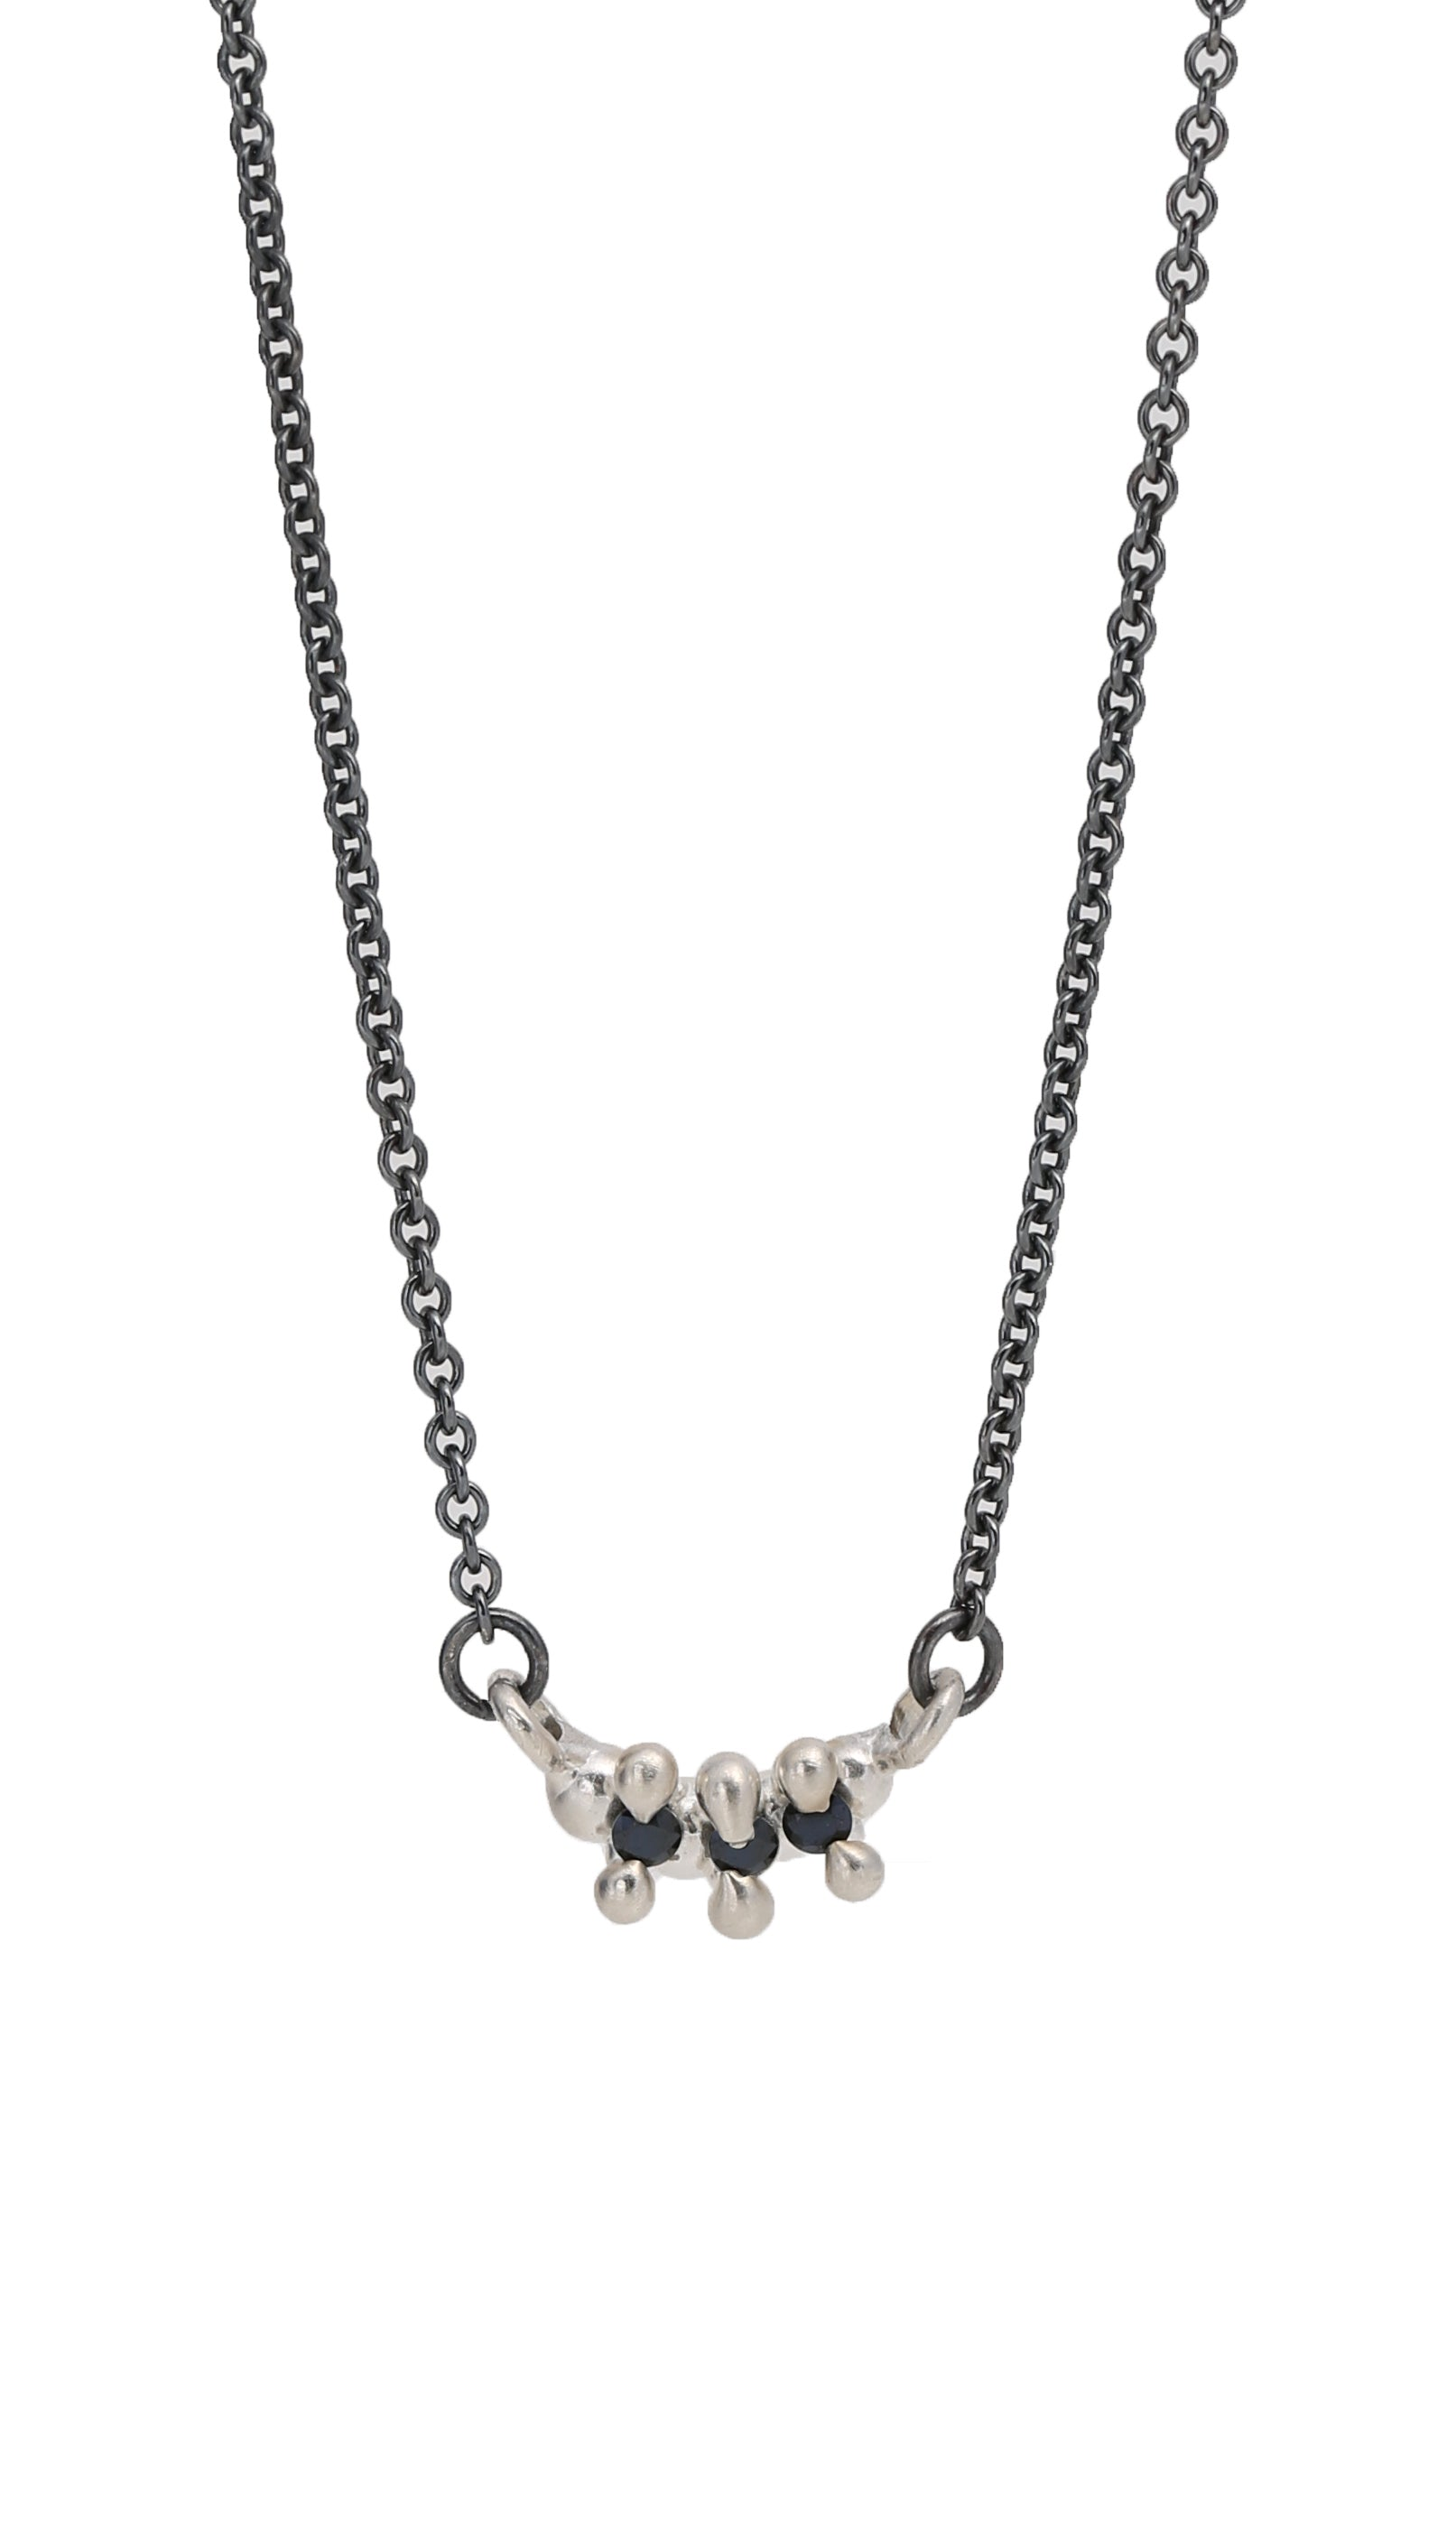 3 Stone Bar Necklace Black Spinel